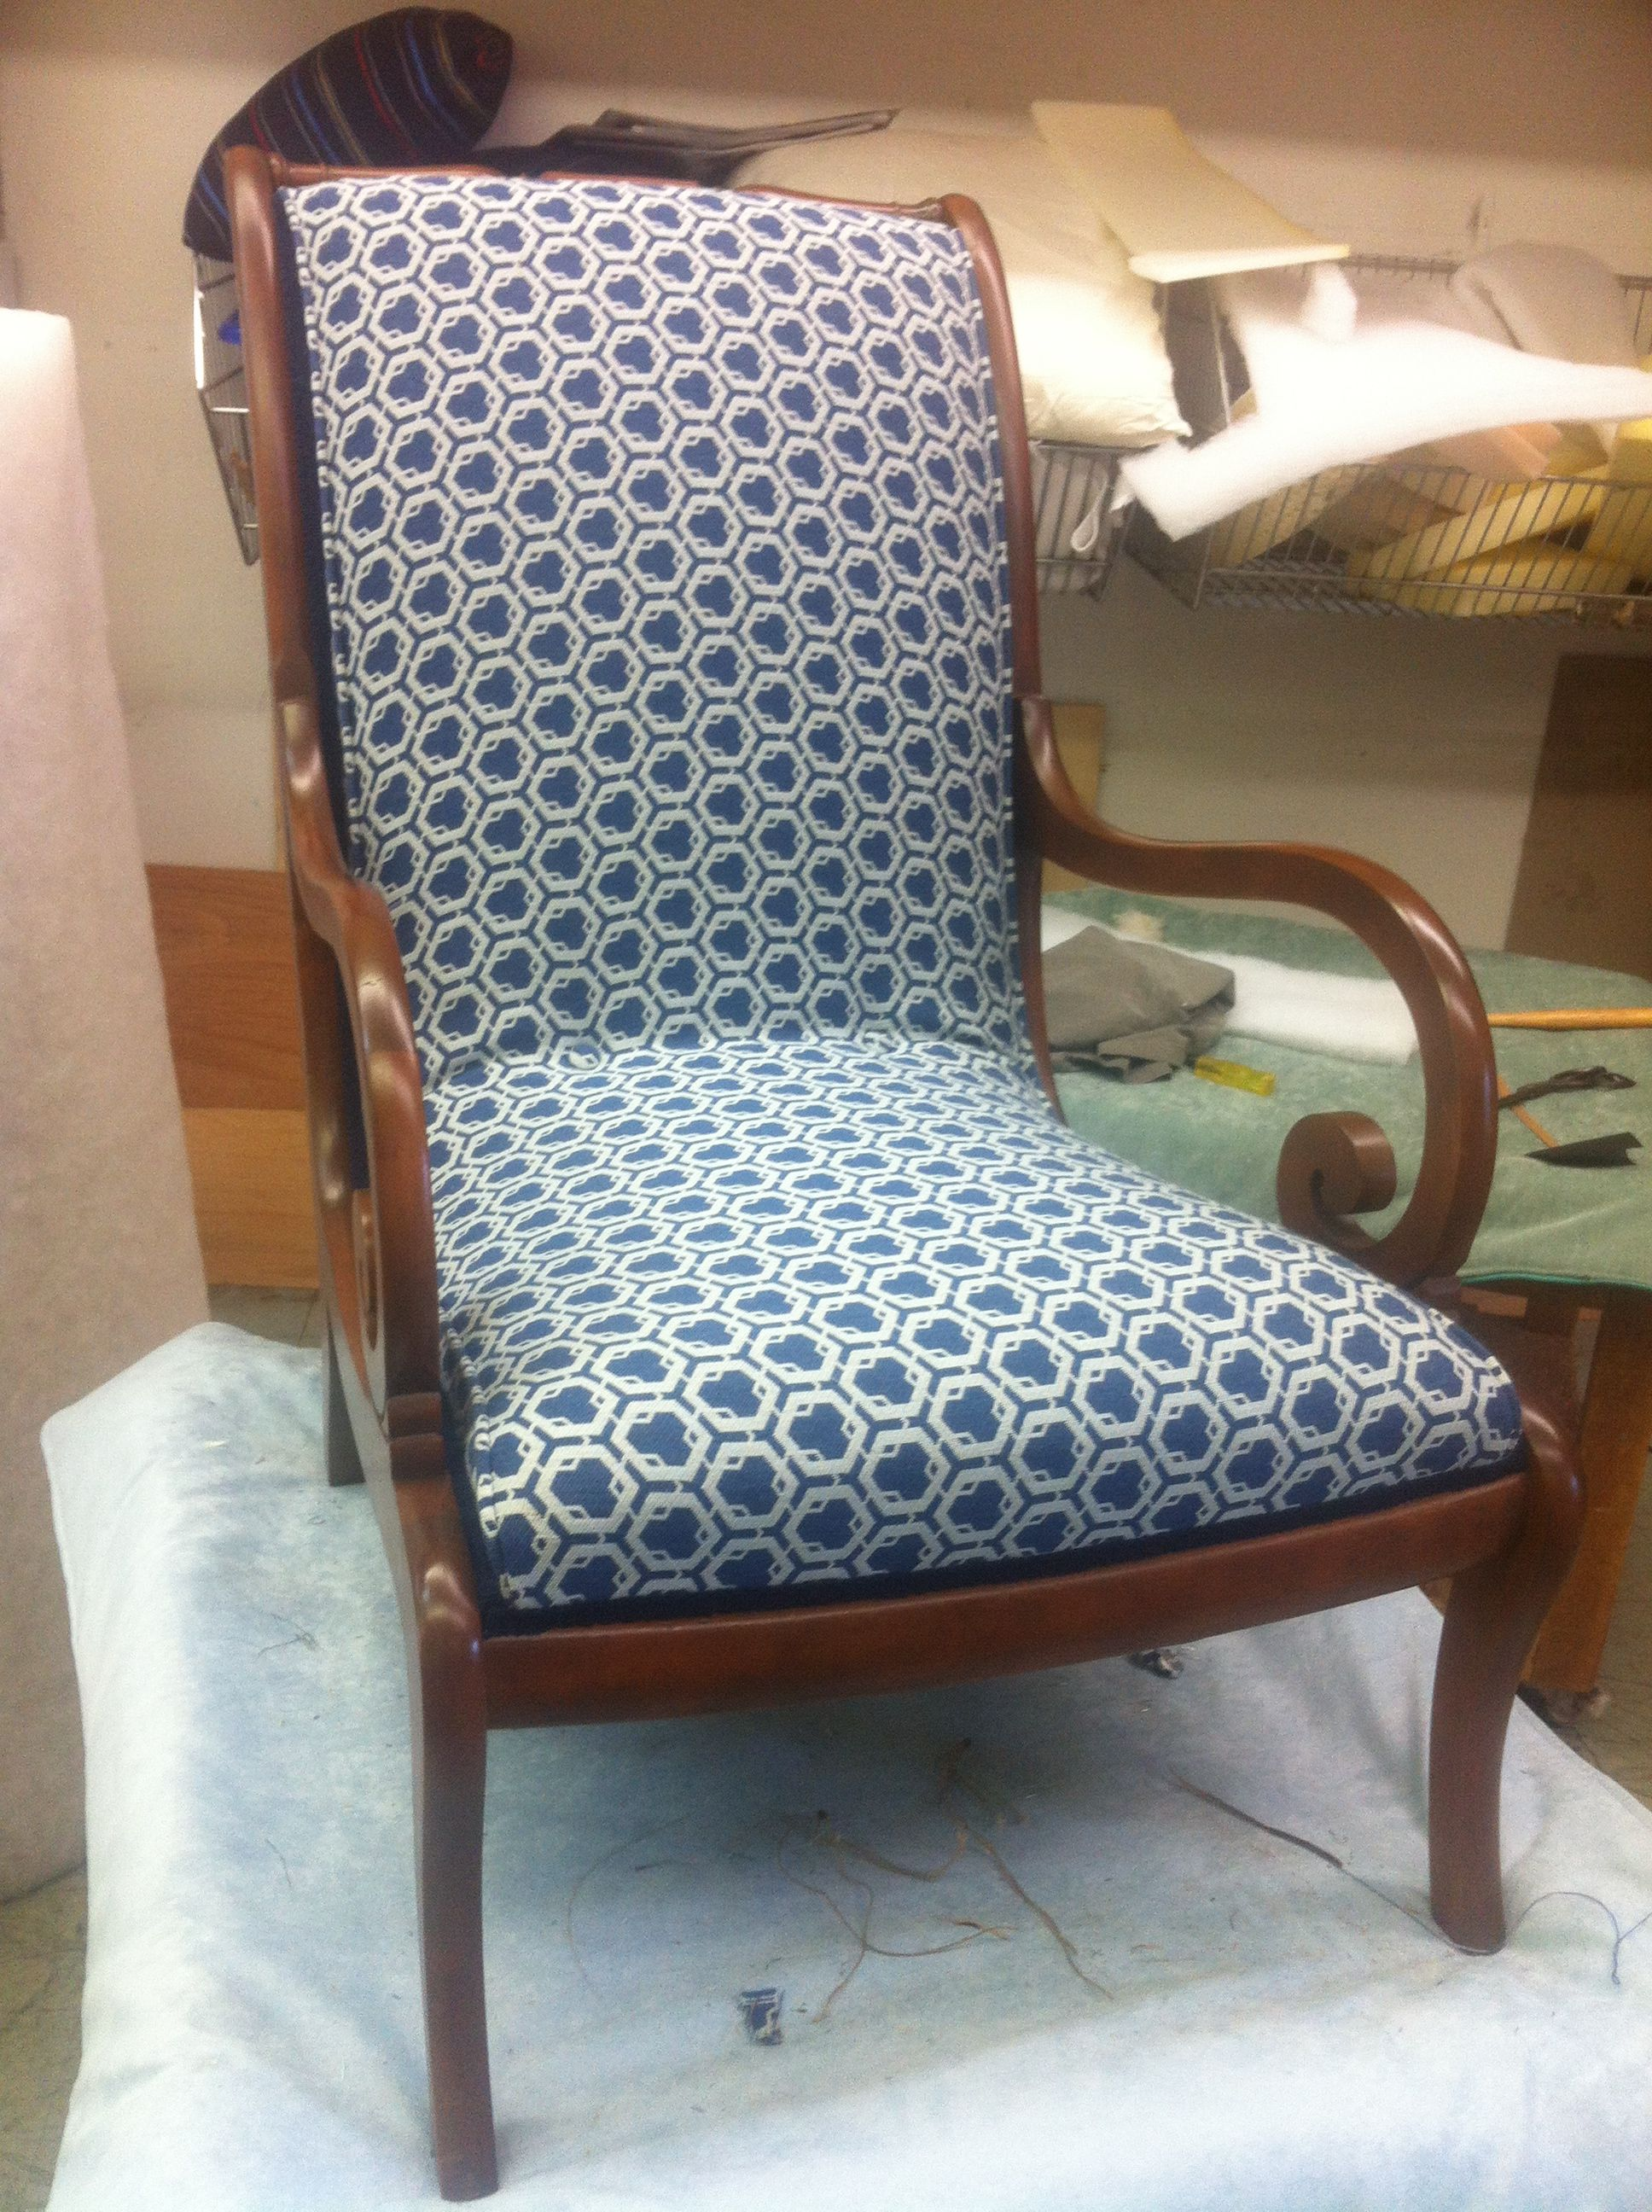 Canadian made scroll arm chair the exact chair im